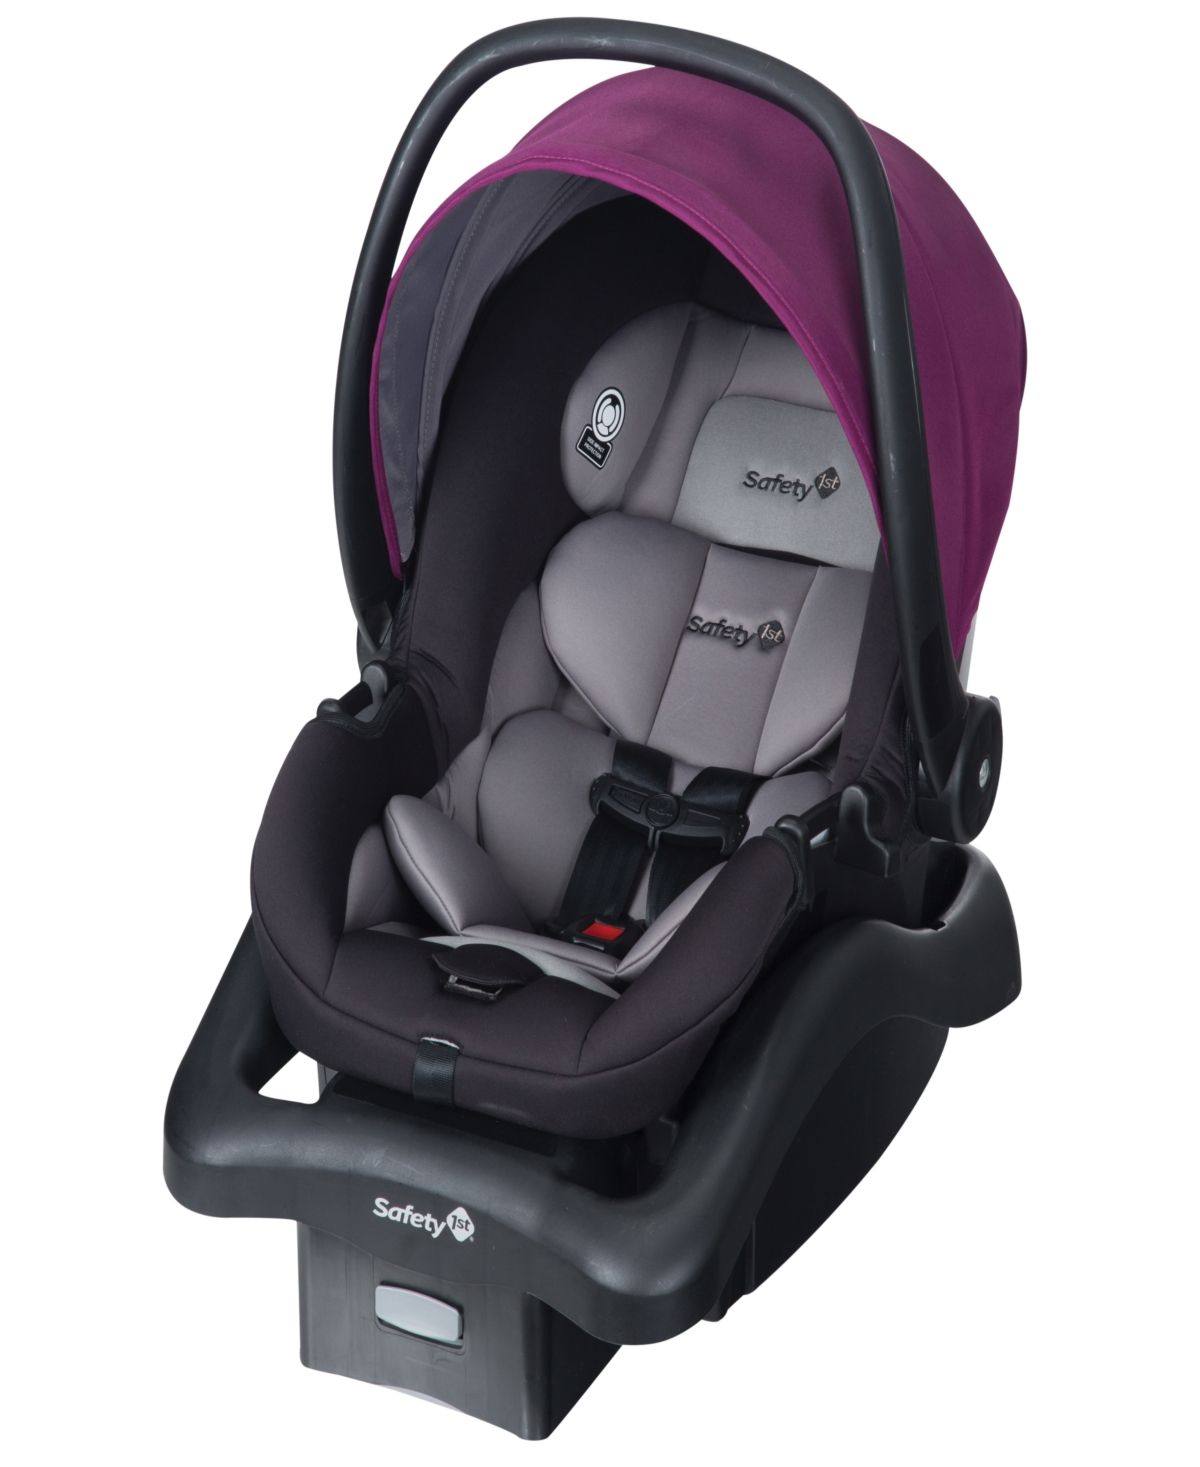 Cosco safety 1st onboard35 lt infant car seat reviews